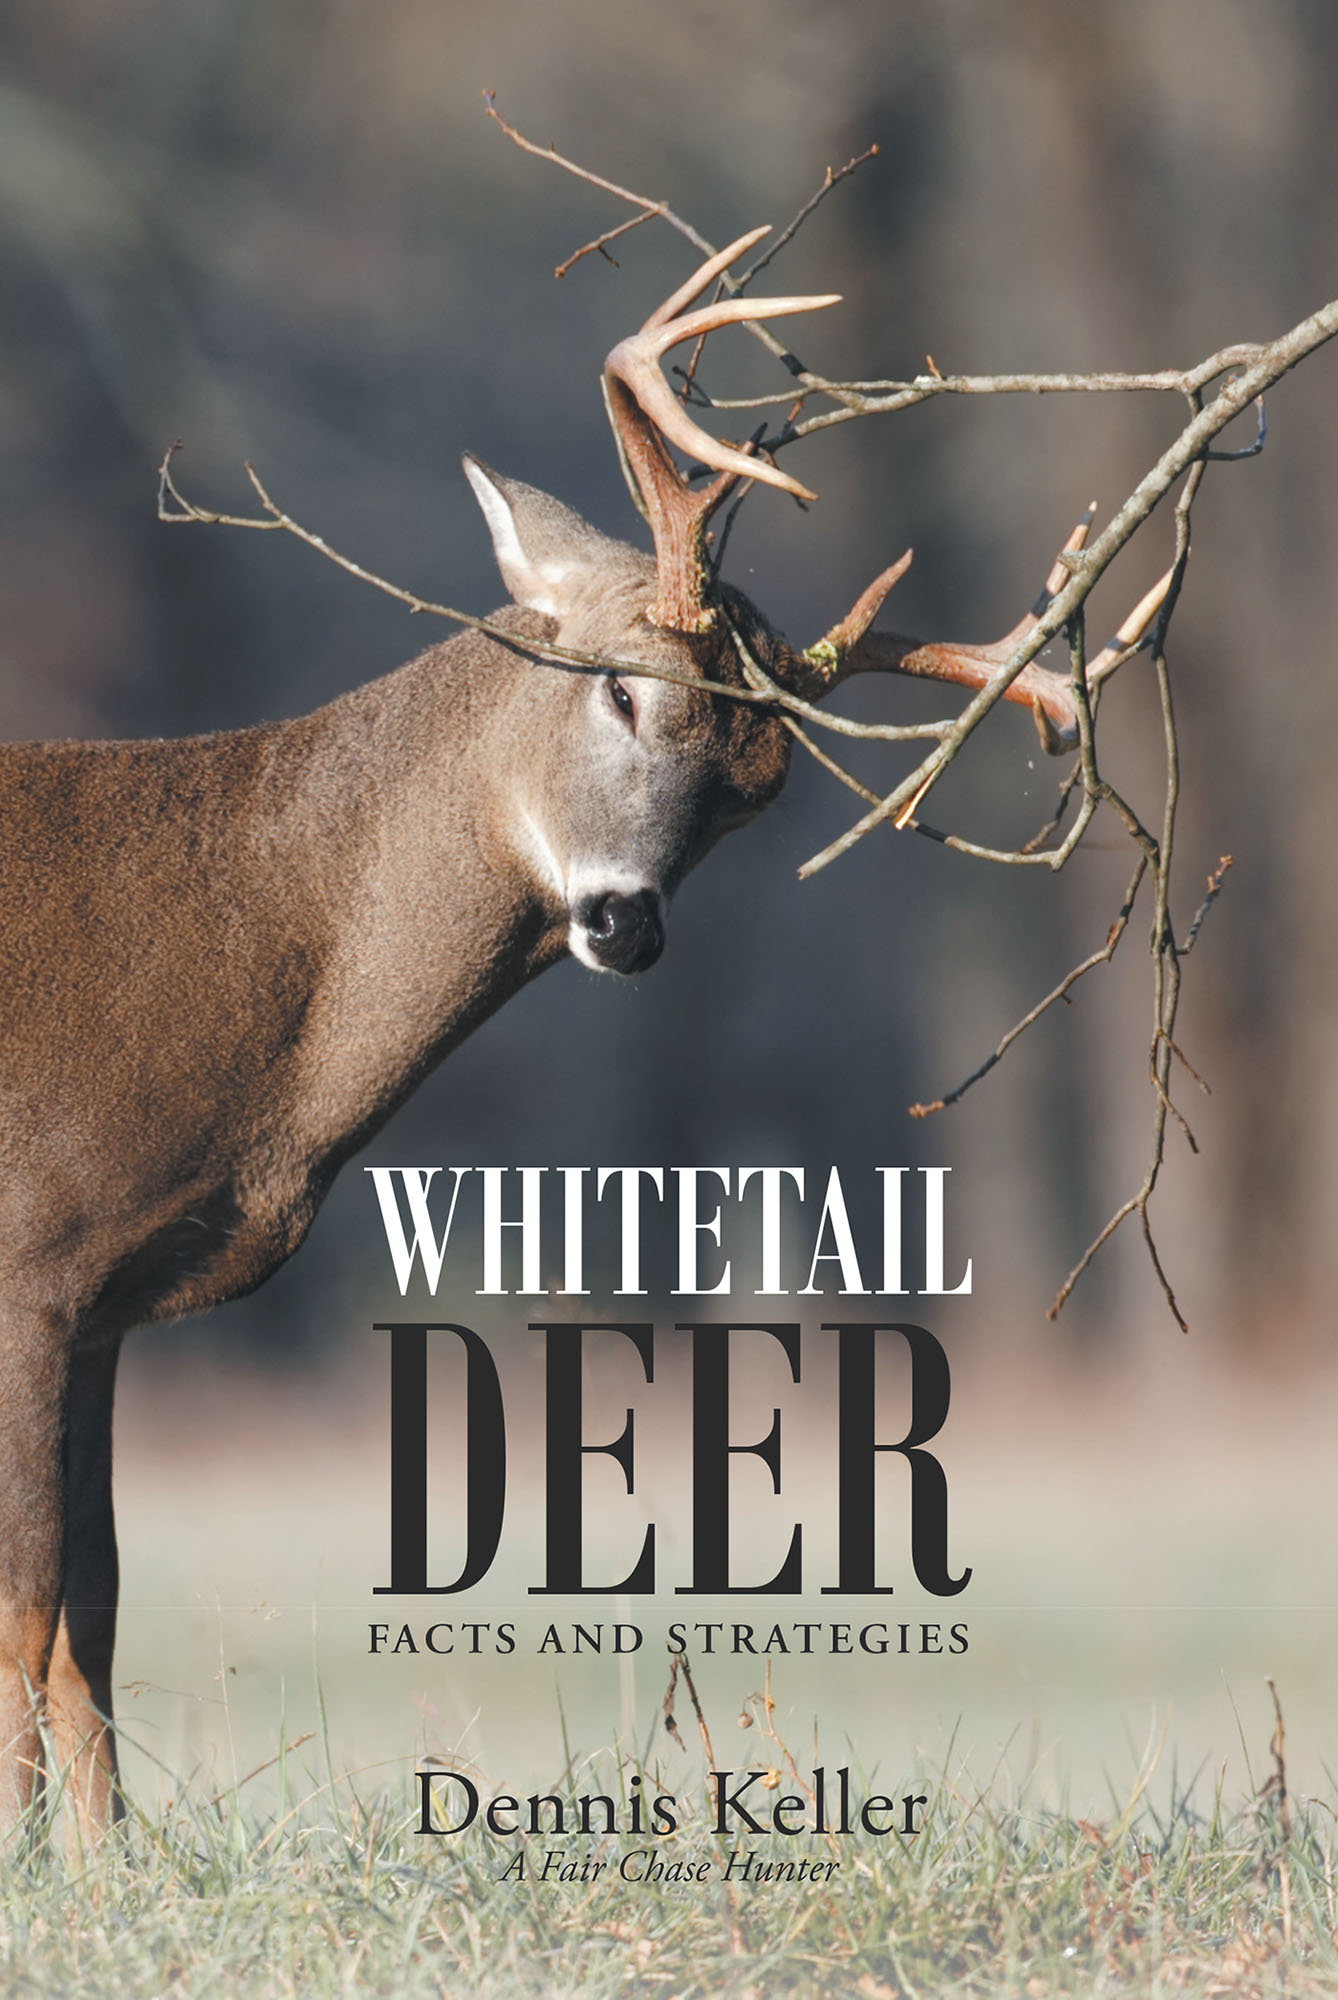 Author Dennis Keller S New Book Whitetail Deer Facts And